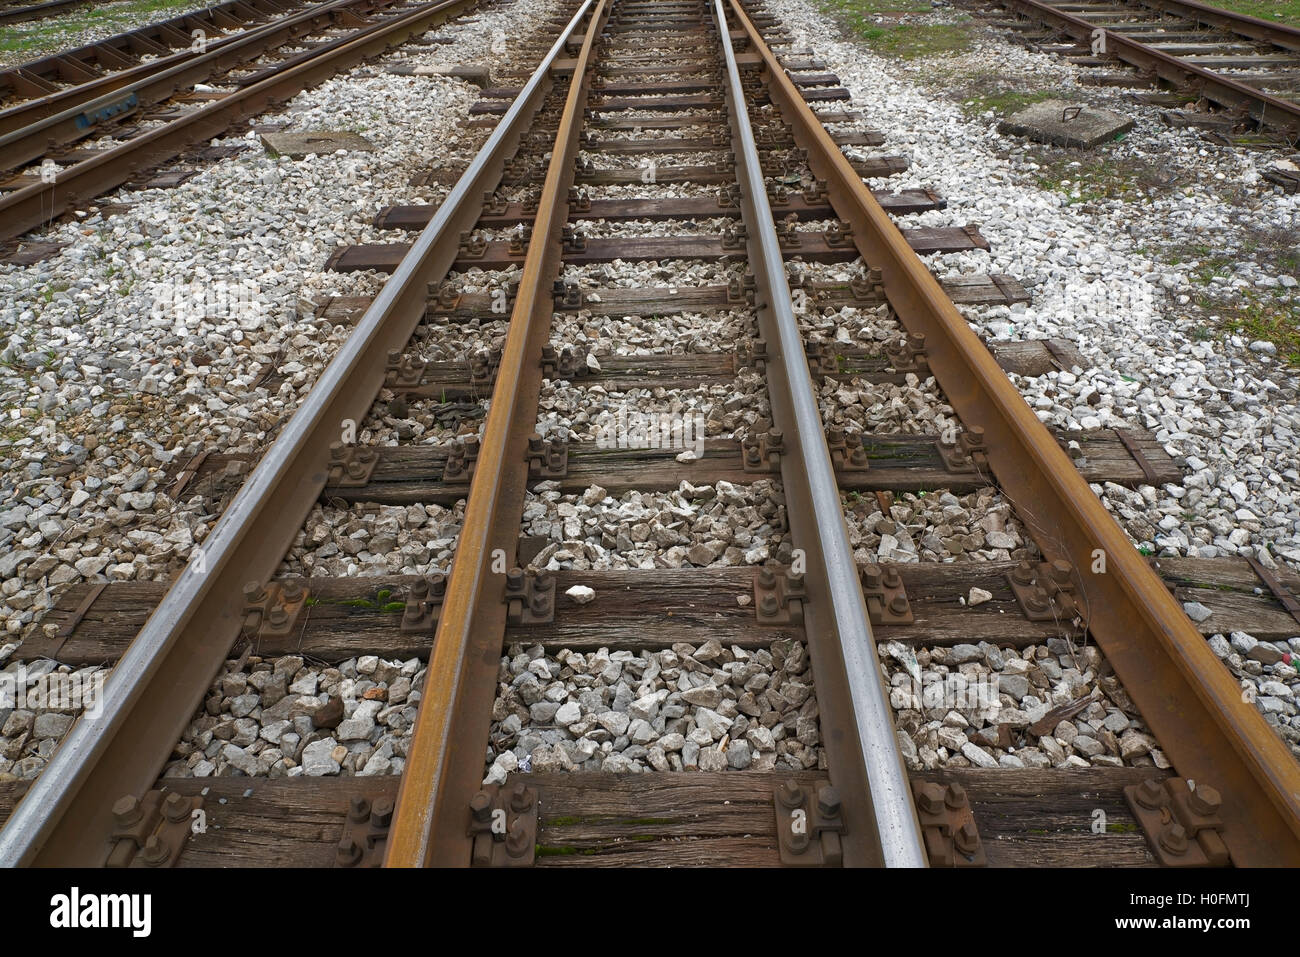 Wooden Train Tracks Wooden Train Tracks Stock Photos And Wooden Train Tracks